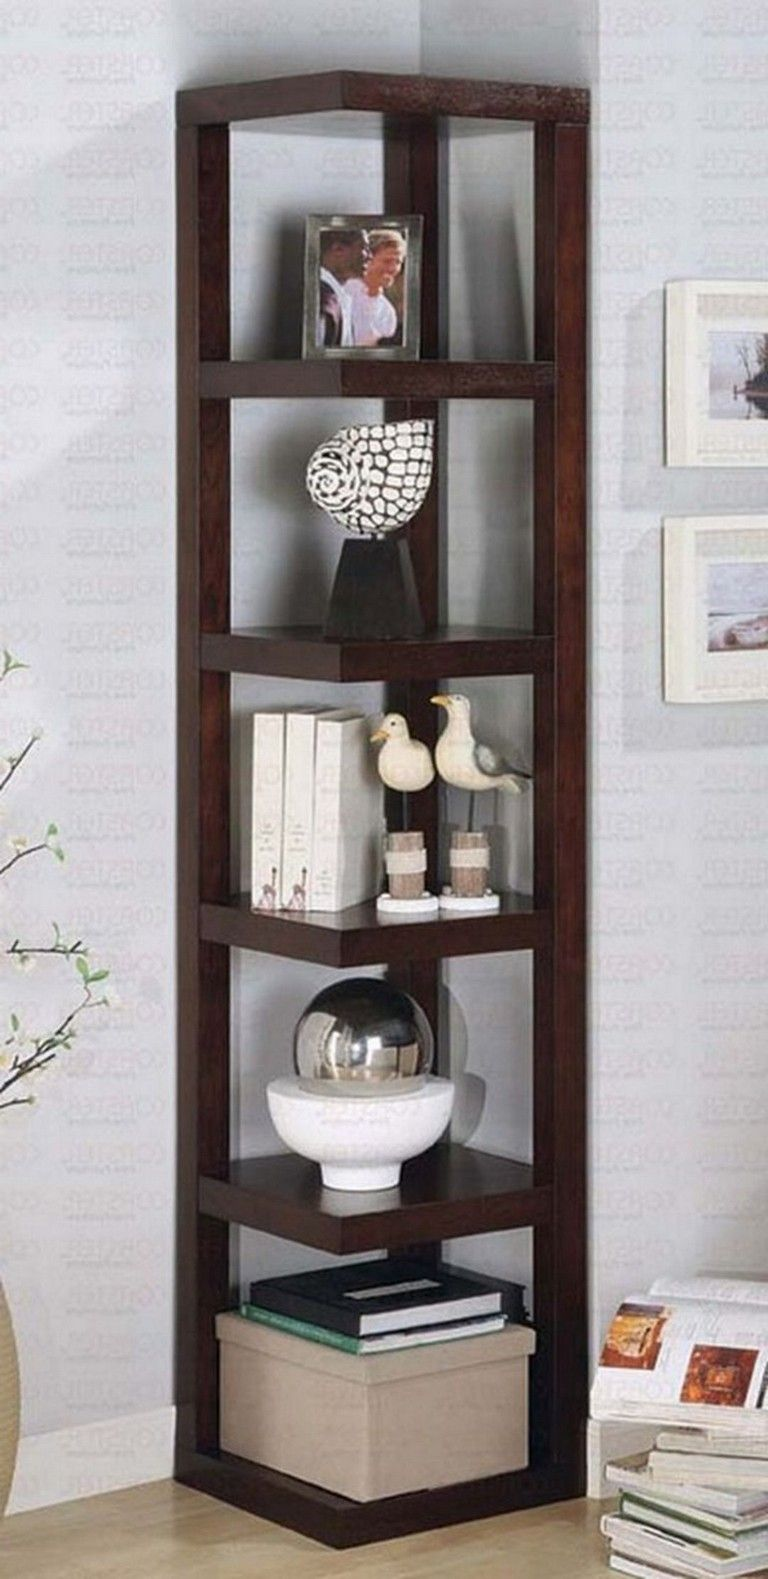 23 Marvelous Corner Shelves Design Ideas For Your Living Room Living Room Corner Decor Corner Shelf Design Corner Furniture